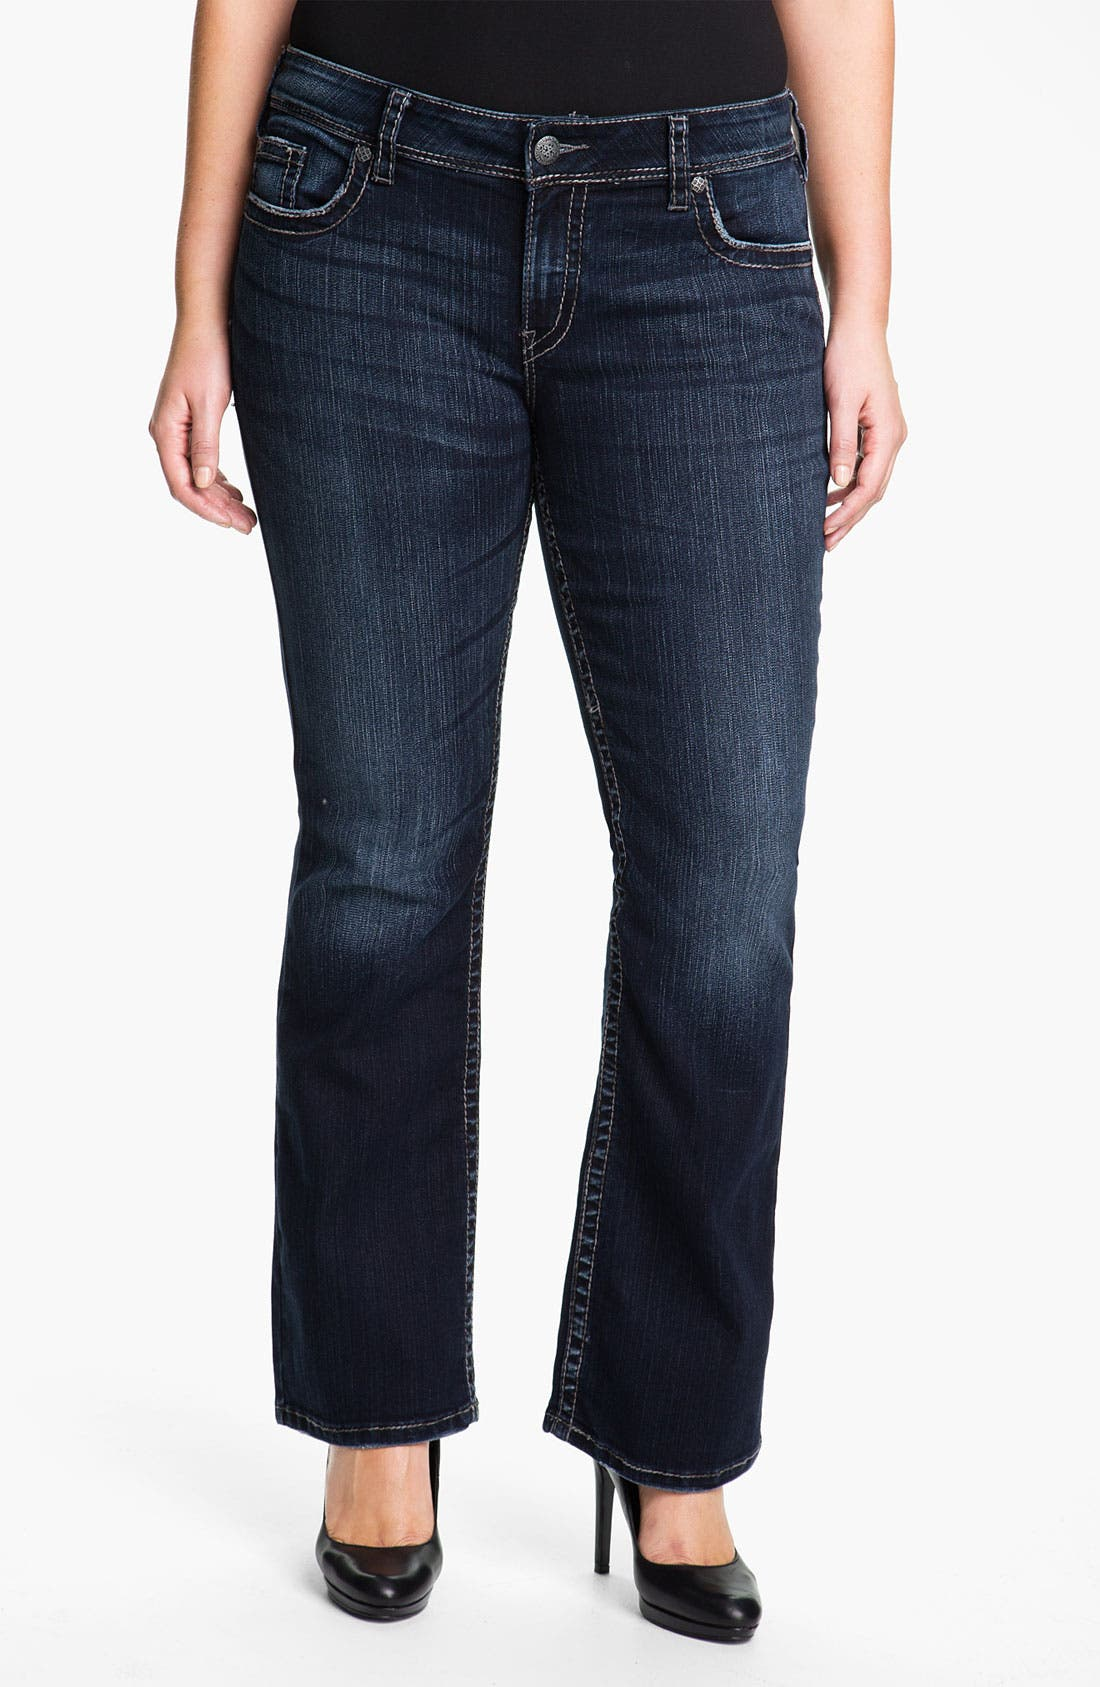 Alternate Image 1 Selected - Silver Jeans Co. 'Suki' Surplus Bootcut Jeans (Juniors Plus)